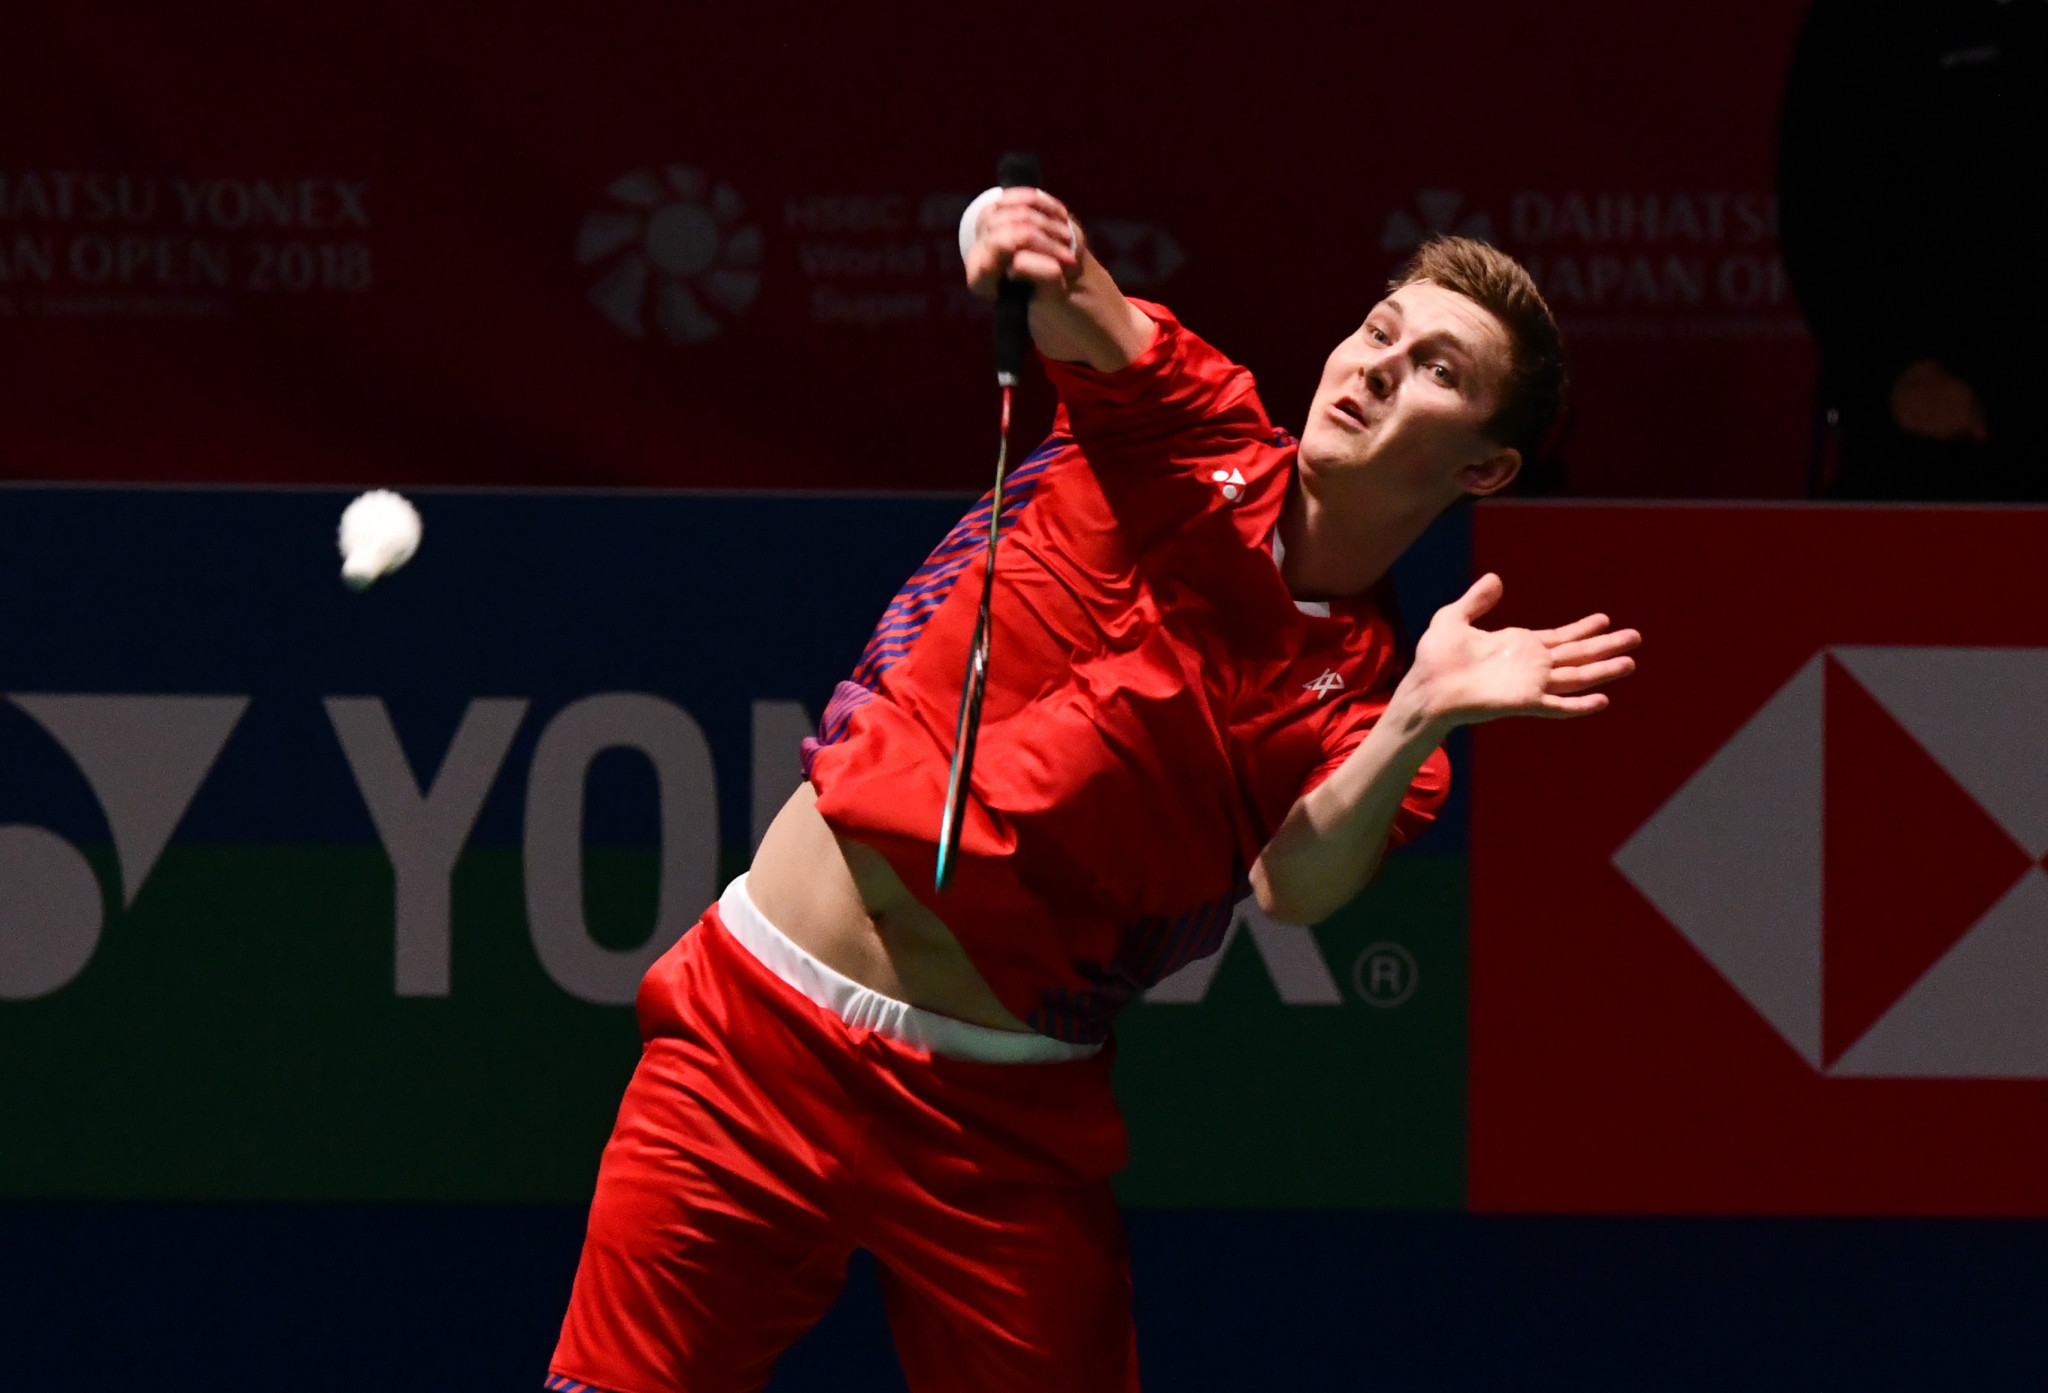 Home favourite Viktor Axelsen opened his bid to claim the BWF Denmark Open title for the first time by registering a straight-games win over Japan's Kazumasa Sakai in Odense today ©Getty Images